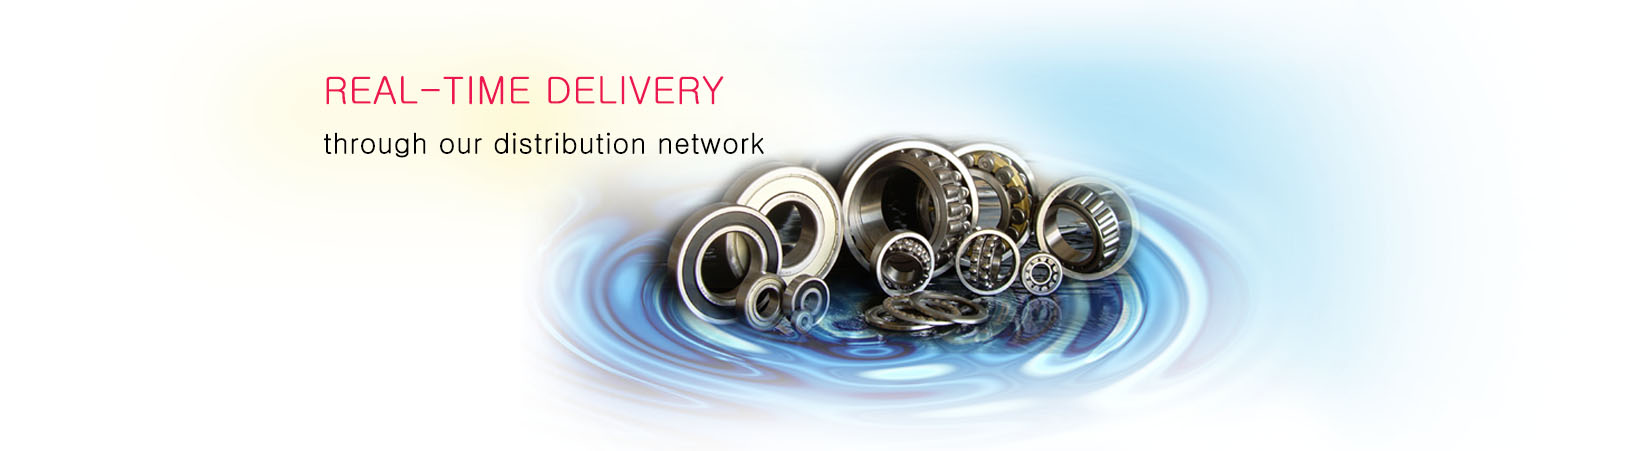 Eurasia Bearings' wide distribution network helps in providing real-time delivery of bearing at your doorstep